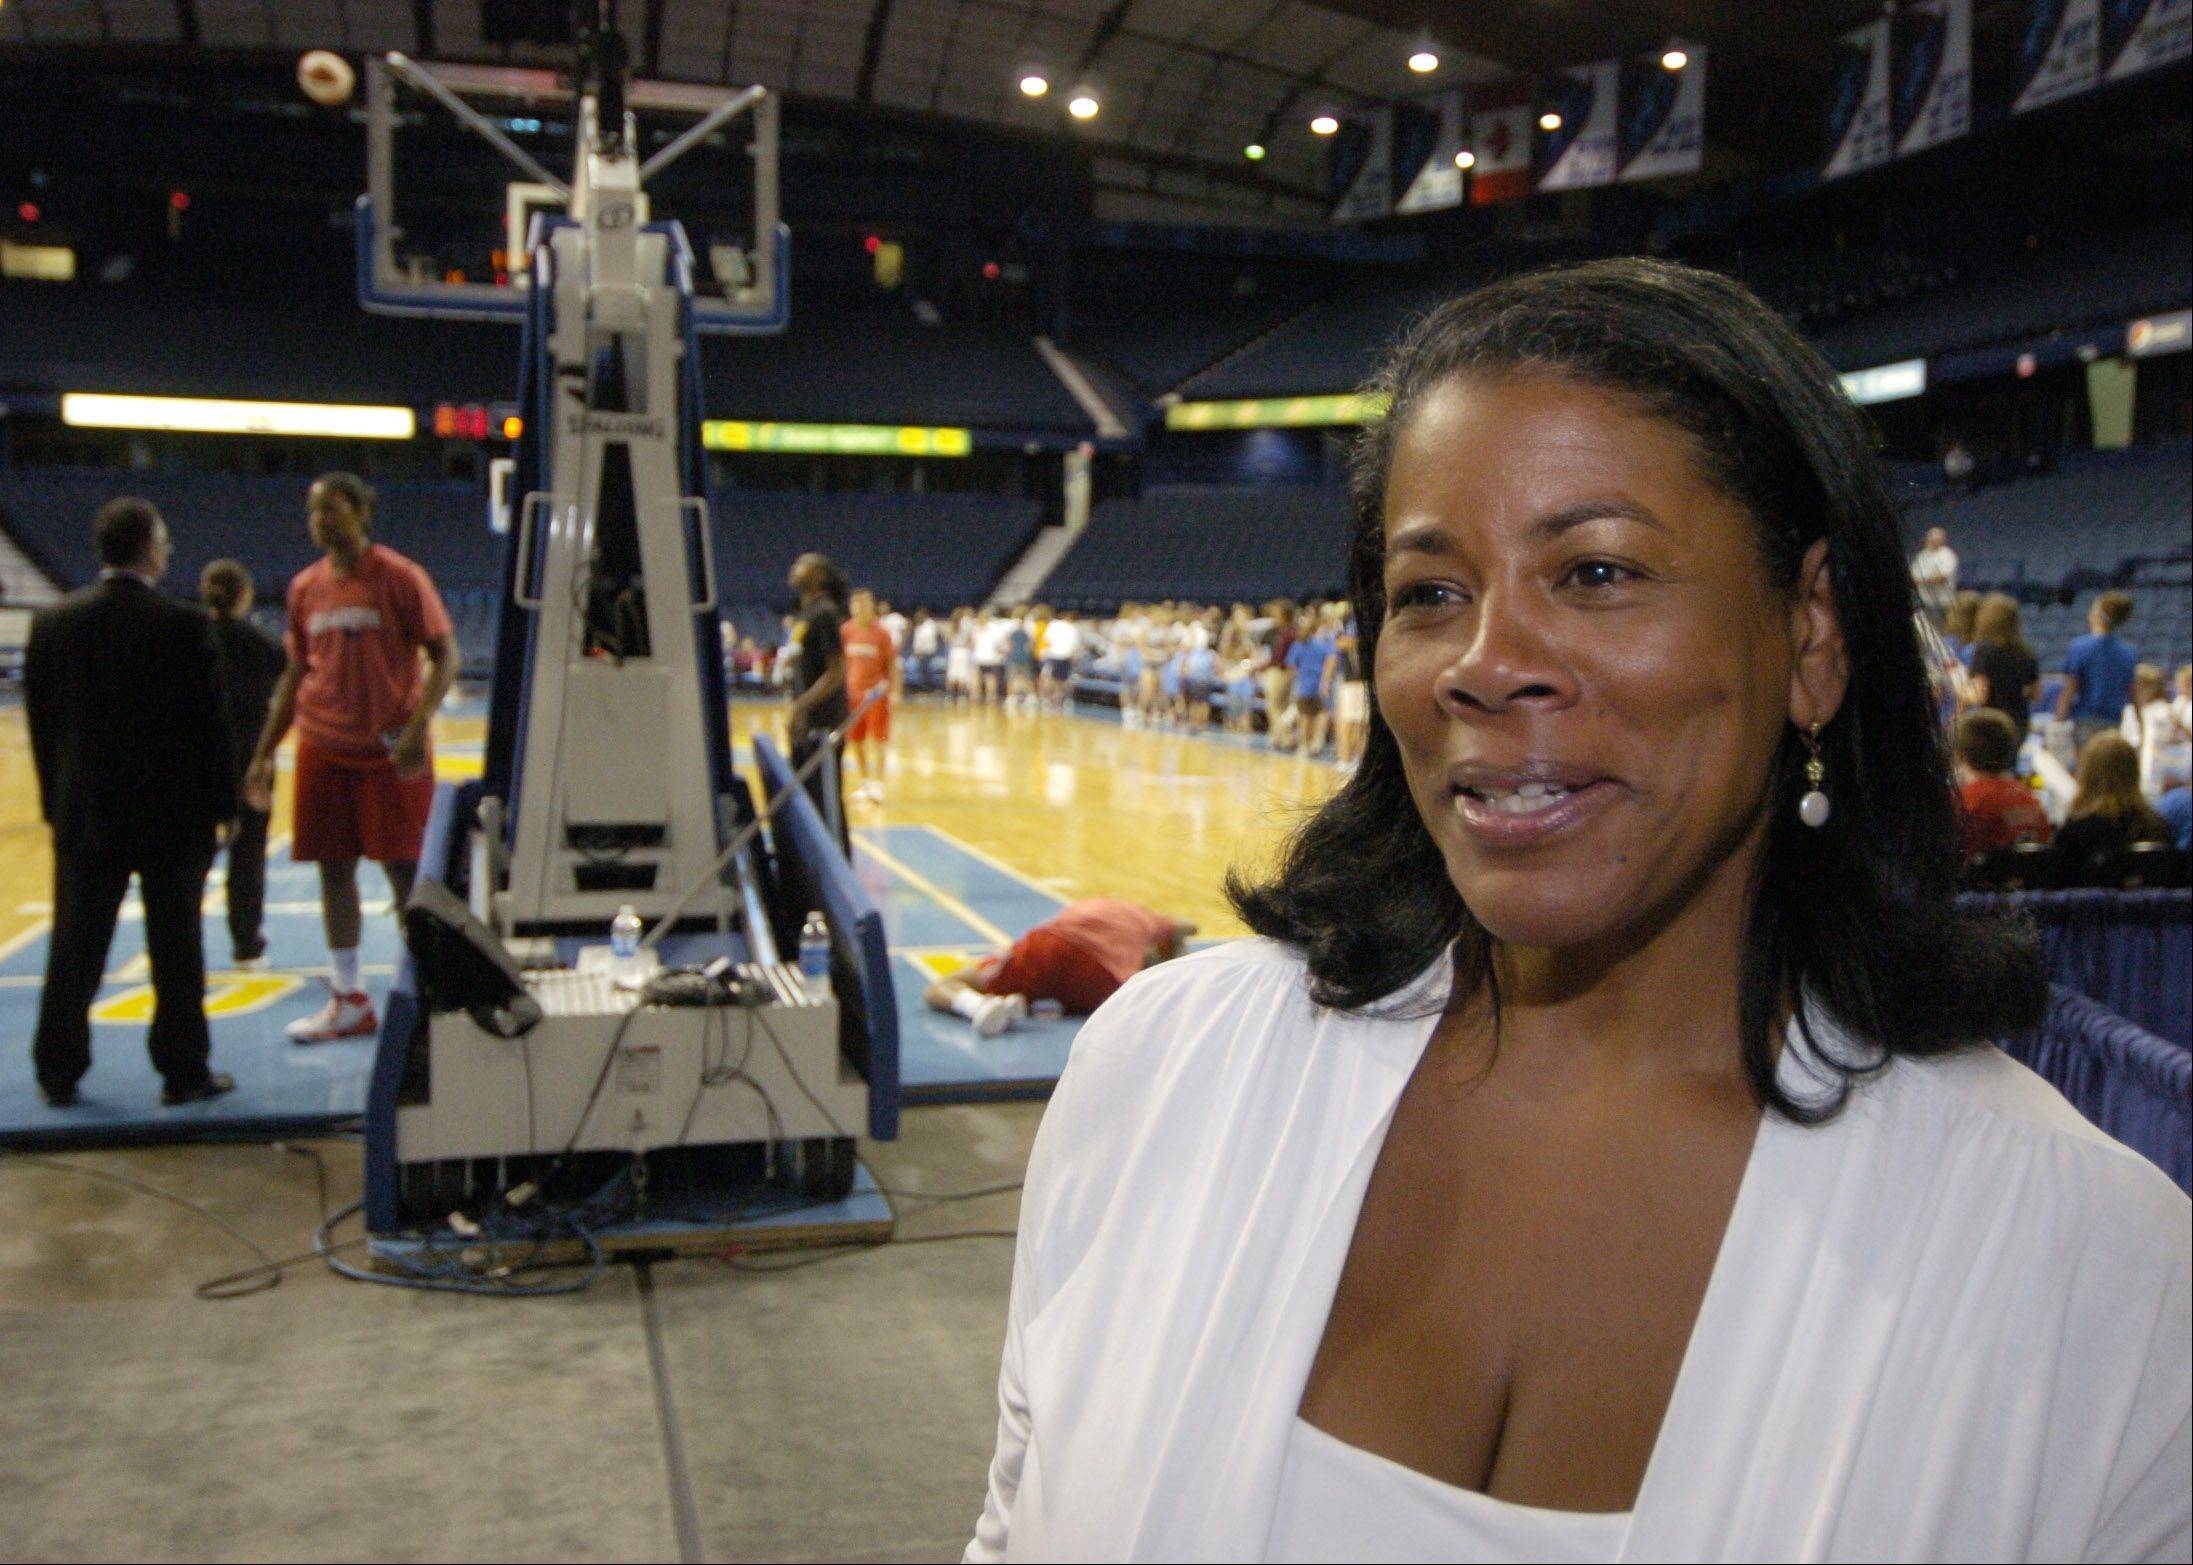 Laurel Richie, president of the WNBA, chats with team personnel prior to a Chicago Sky game at the Allstate Arena in Rosemont this week.